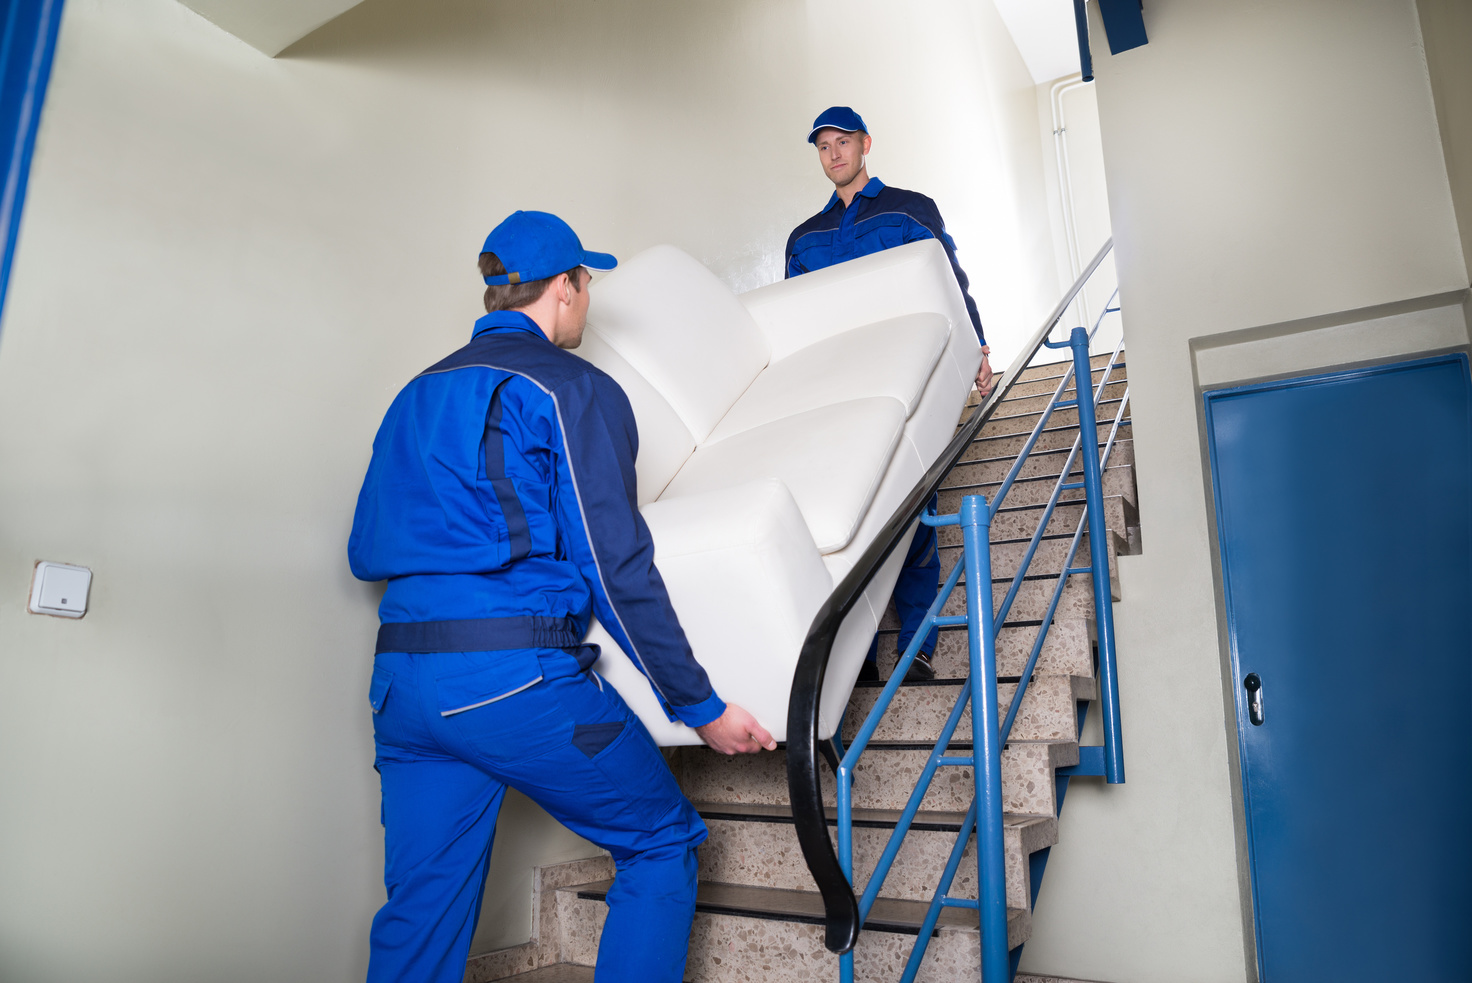 relocation specialists taking a sofa upstairs